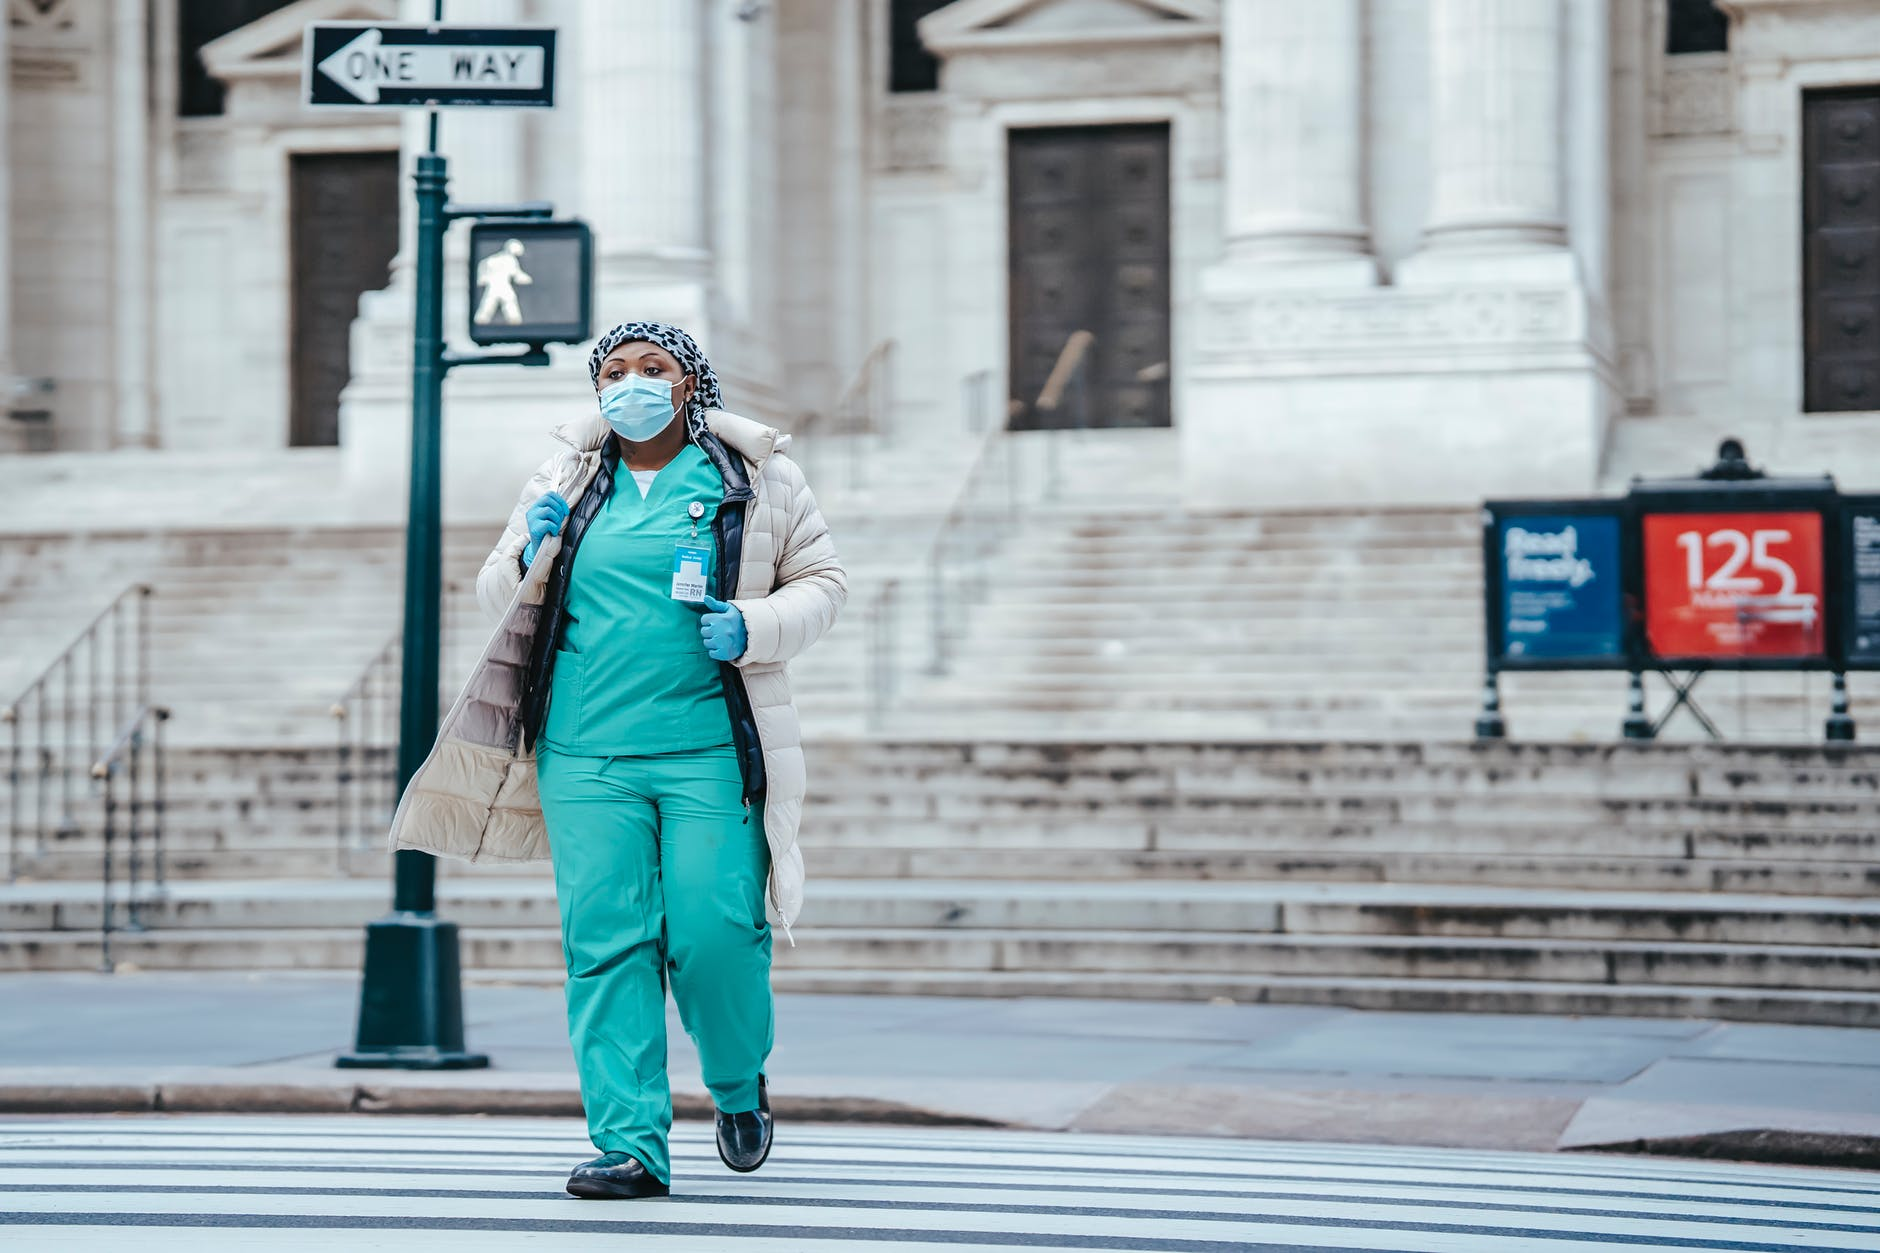 black physician in uniform crossing city road